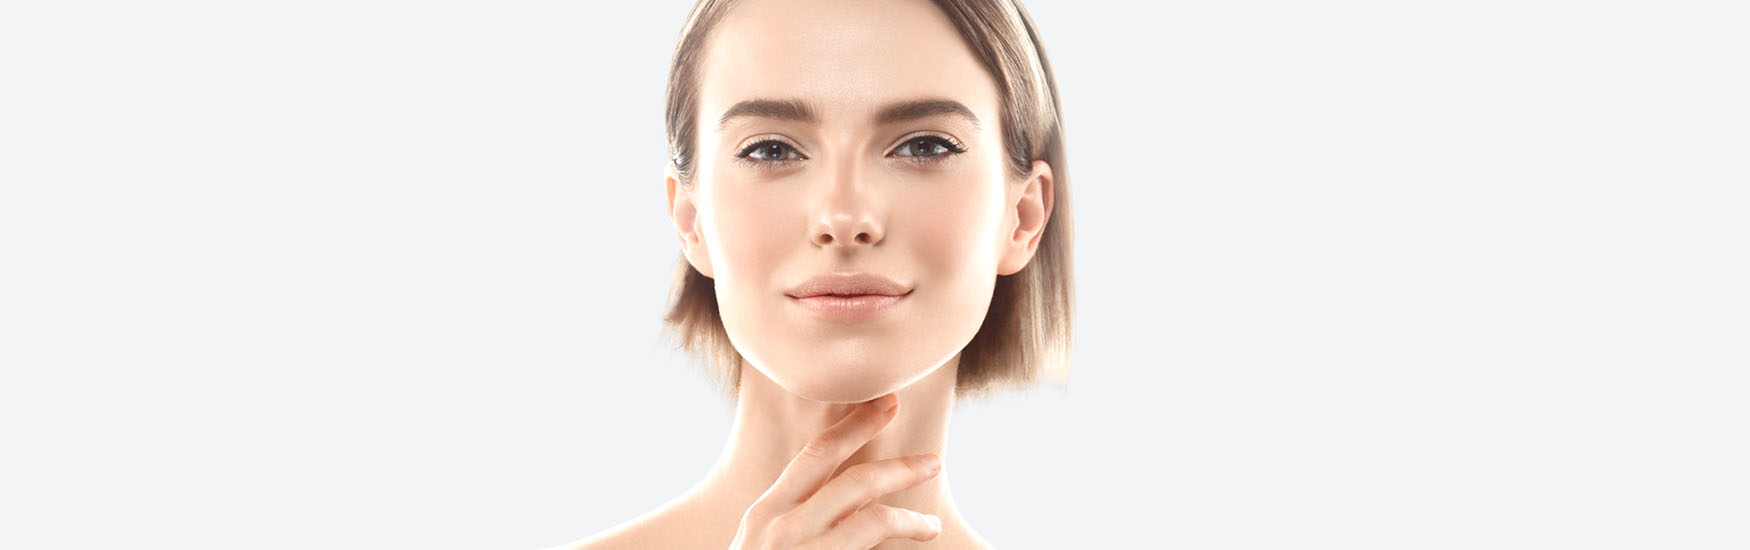 Skin Rejuvenation And Anti Aging Treatments In The Philippines